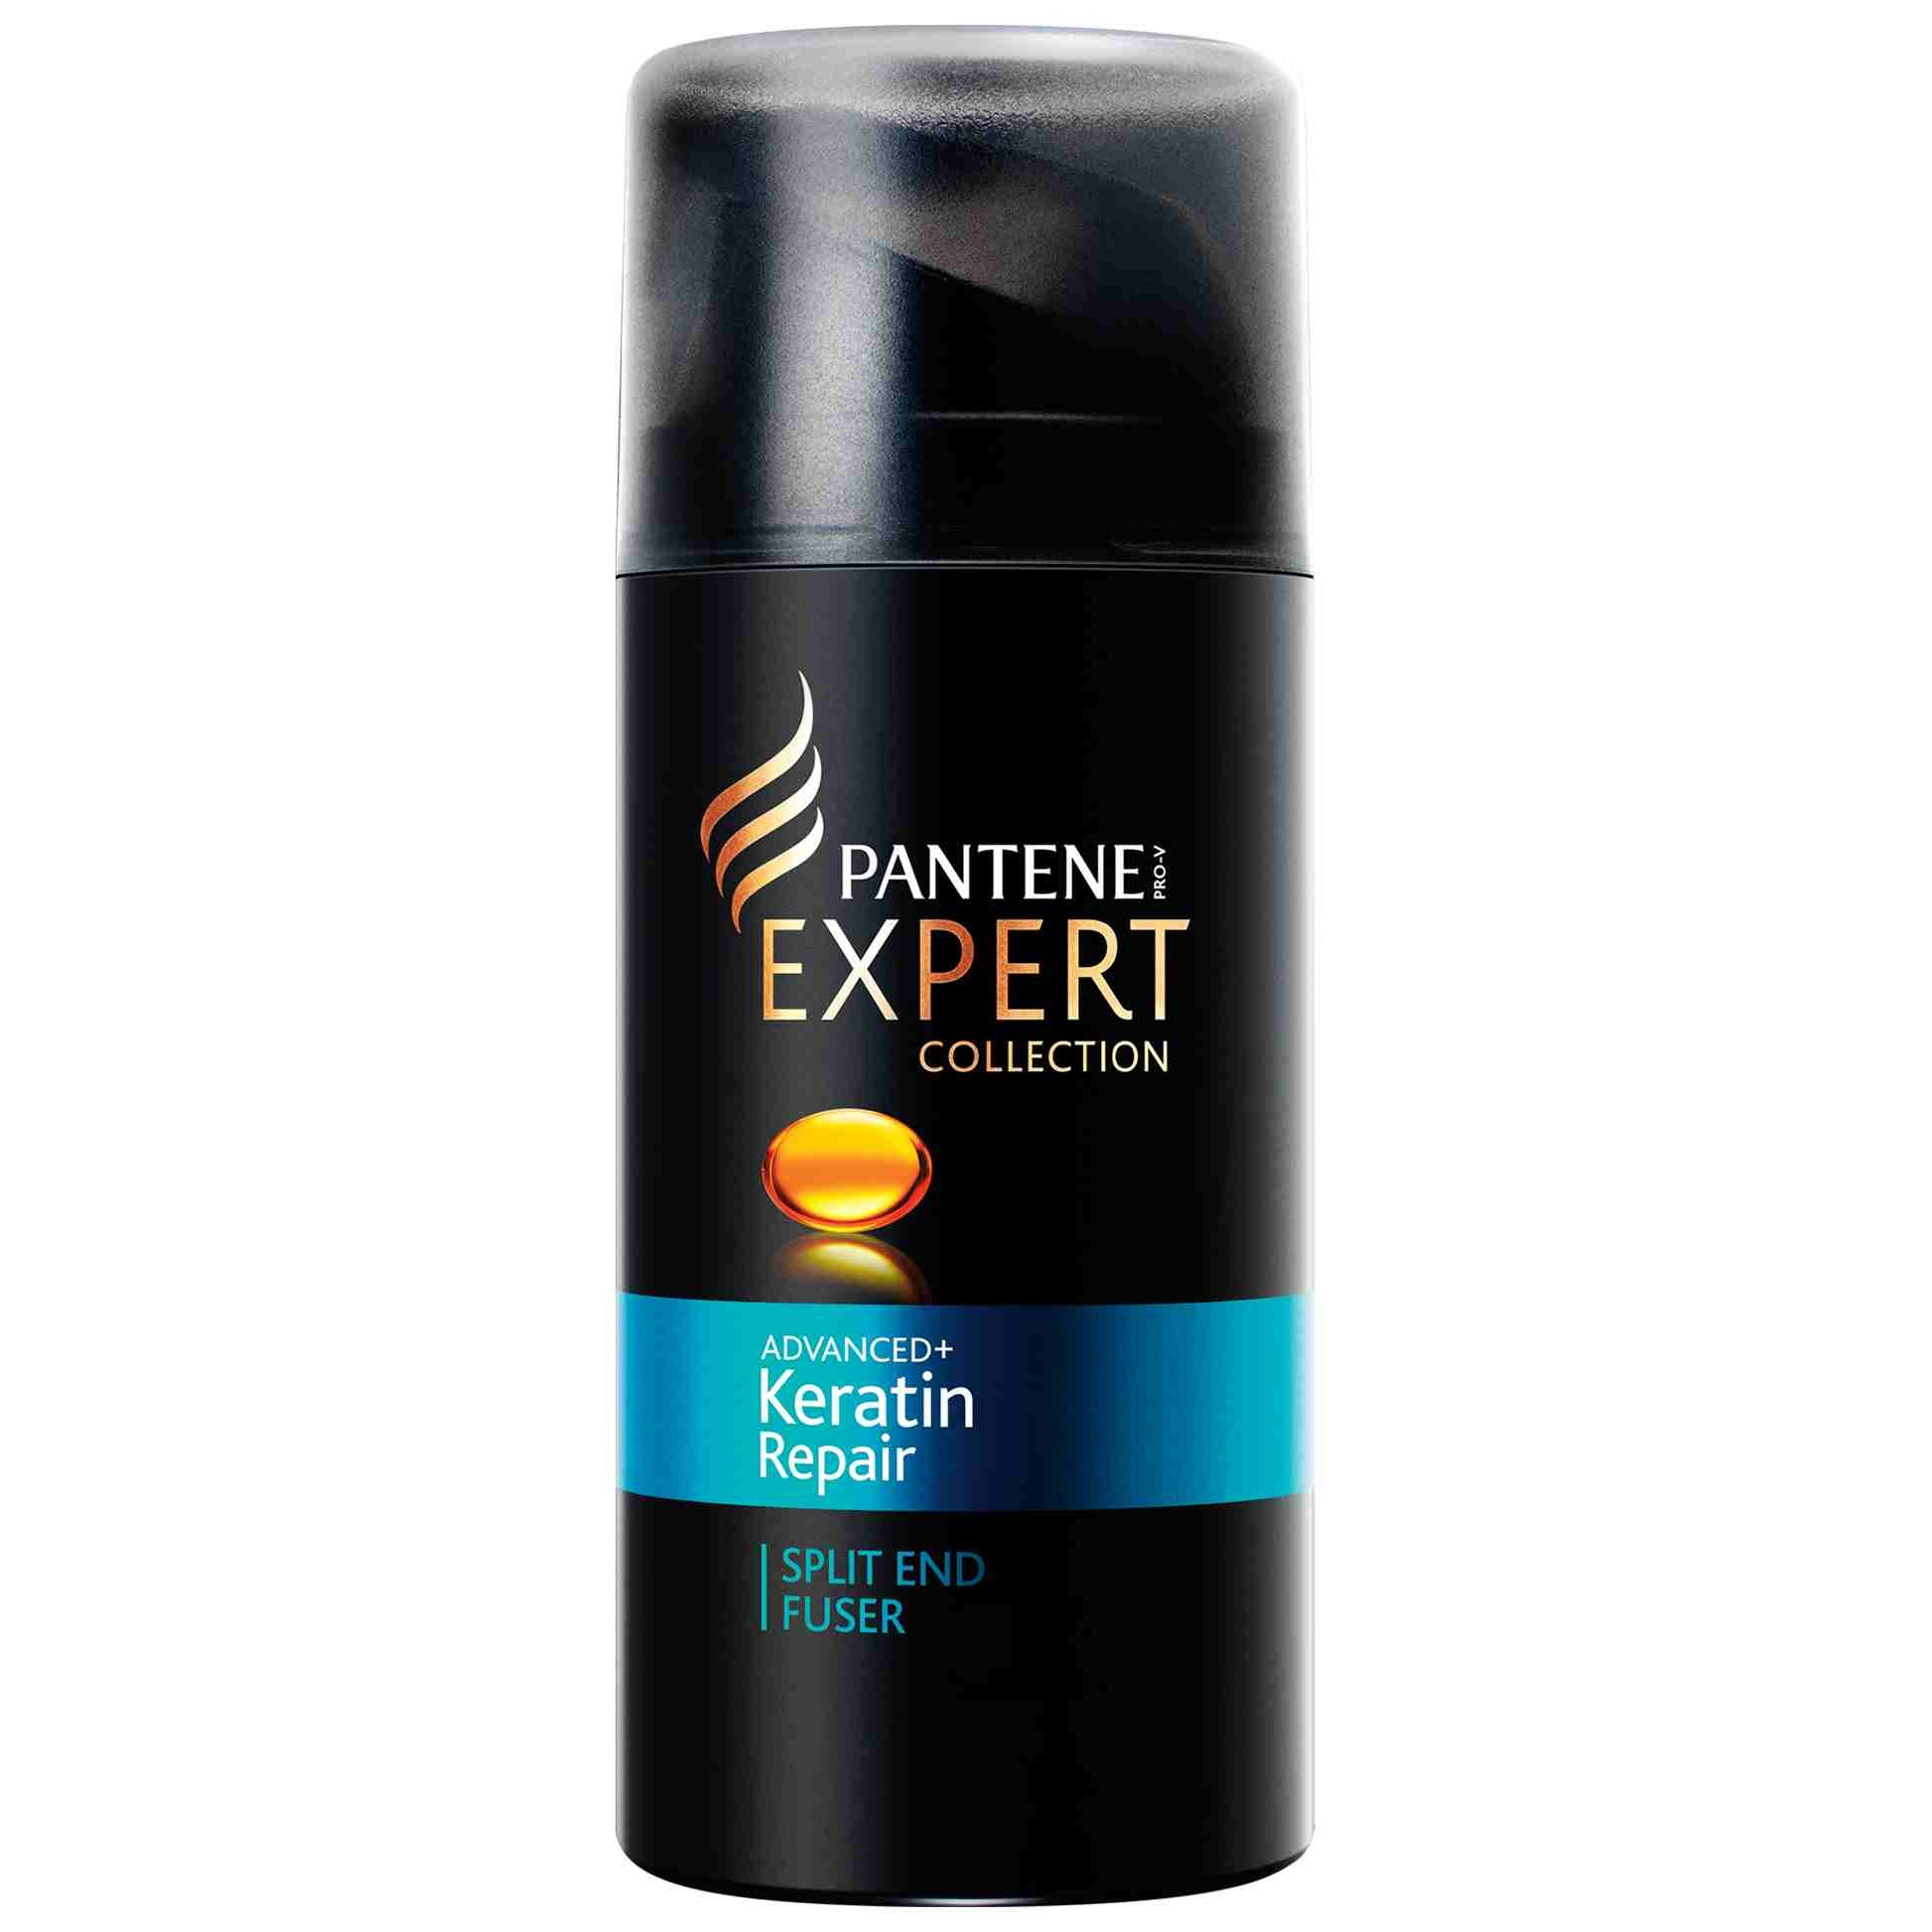 Pantene expert collection advanced keratin repair reparador puntas abiertas de 10cl. en bote